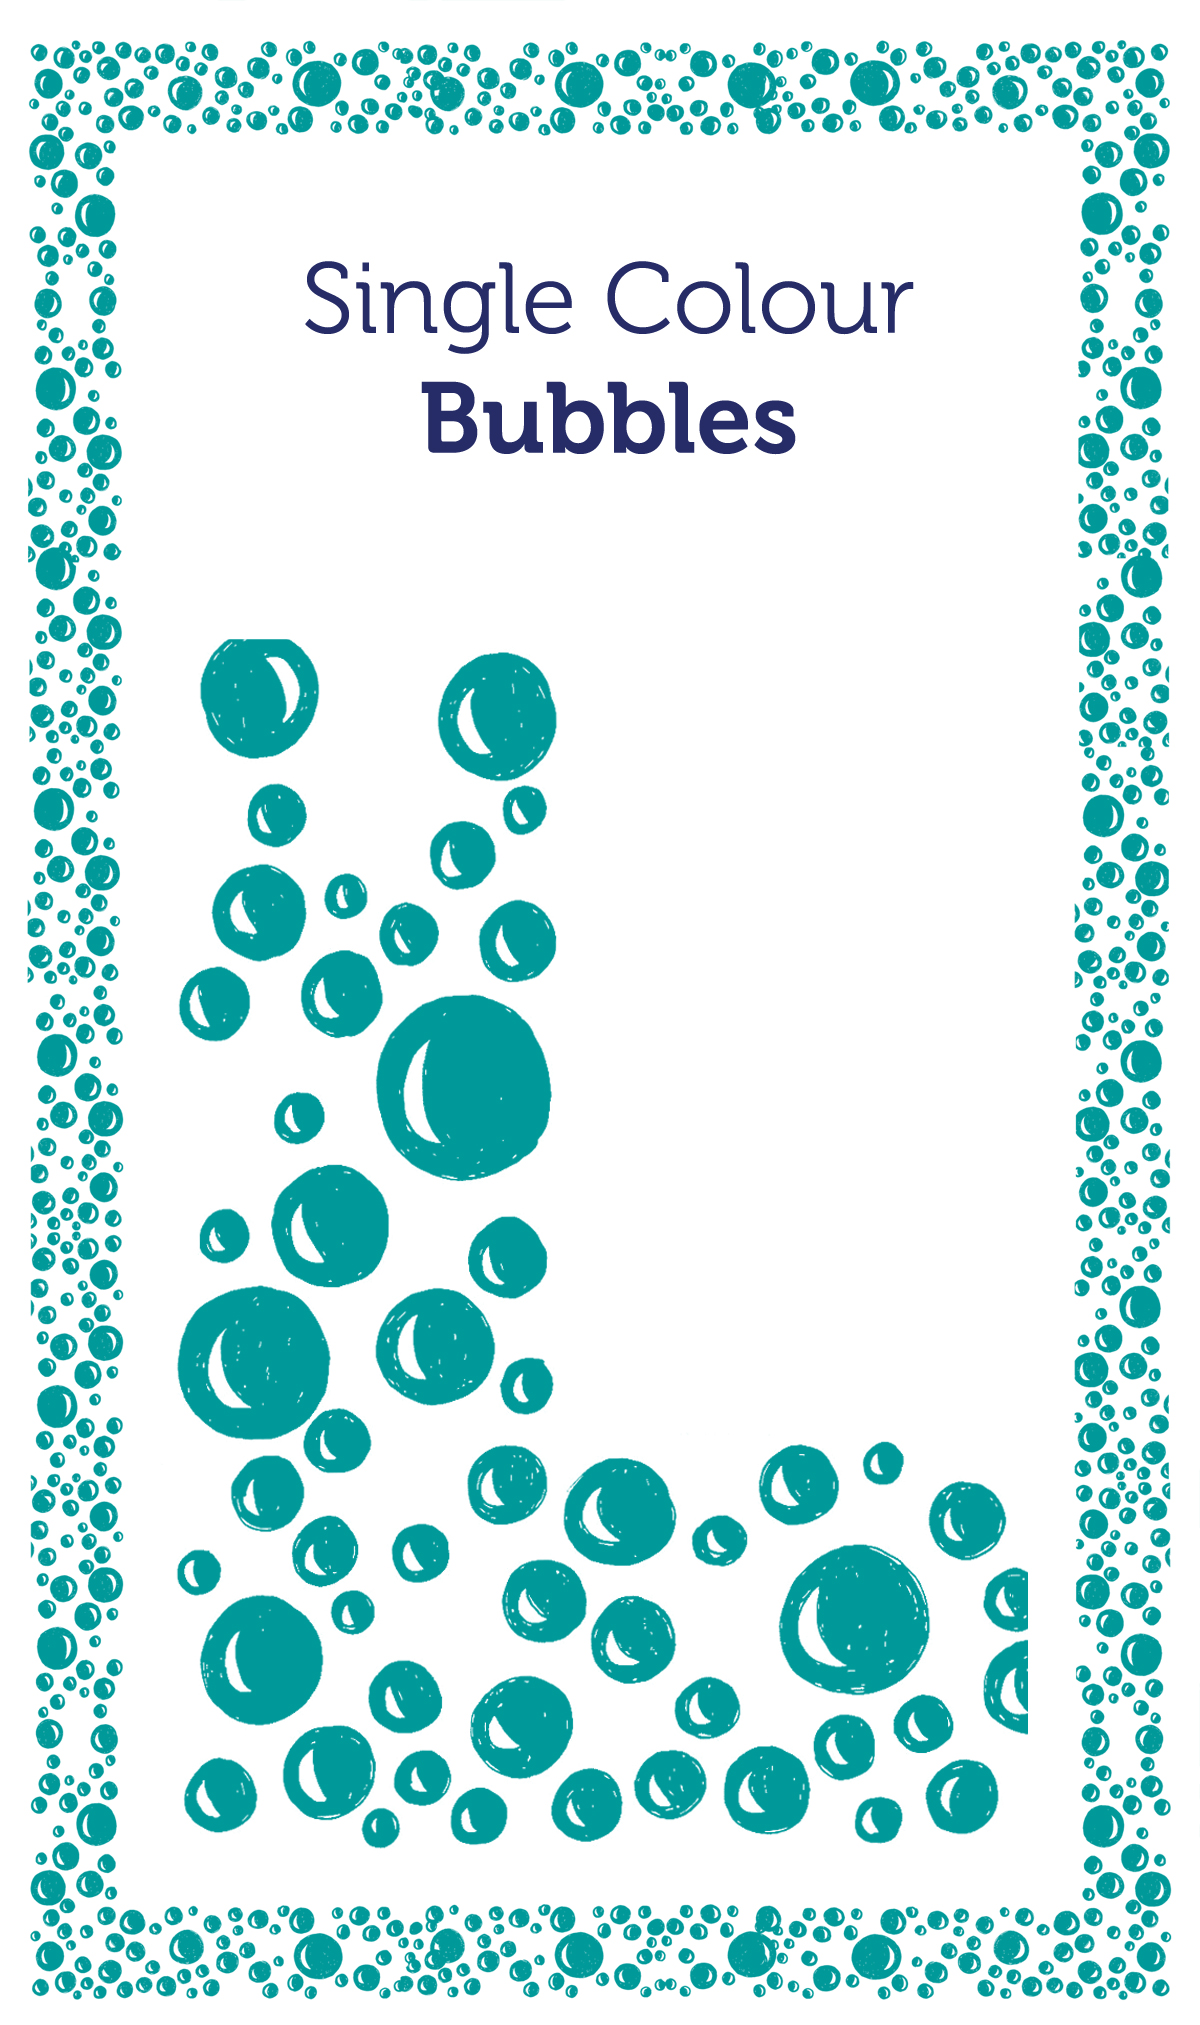 2_BubblesSingle